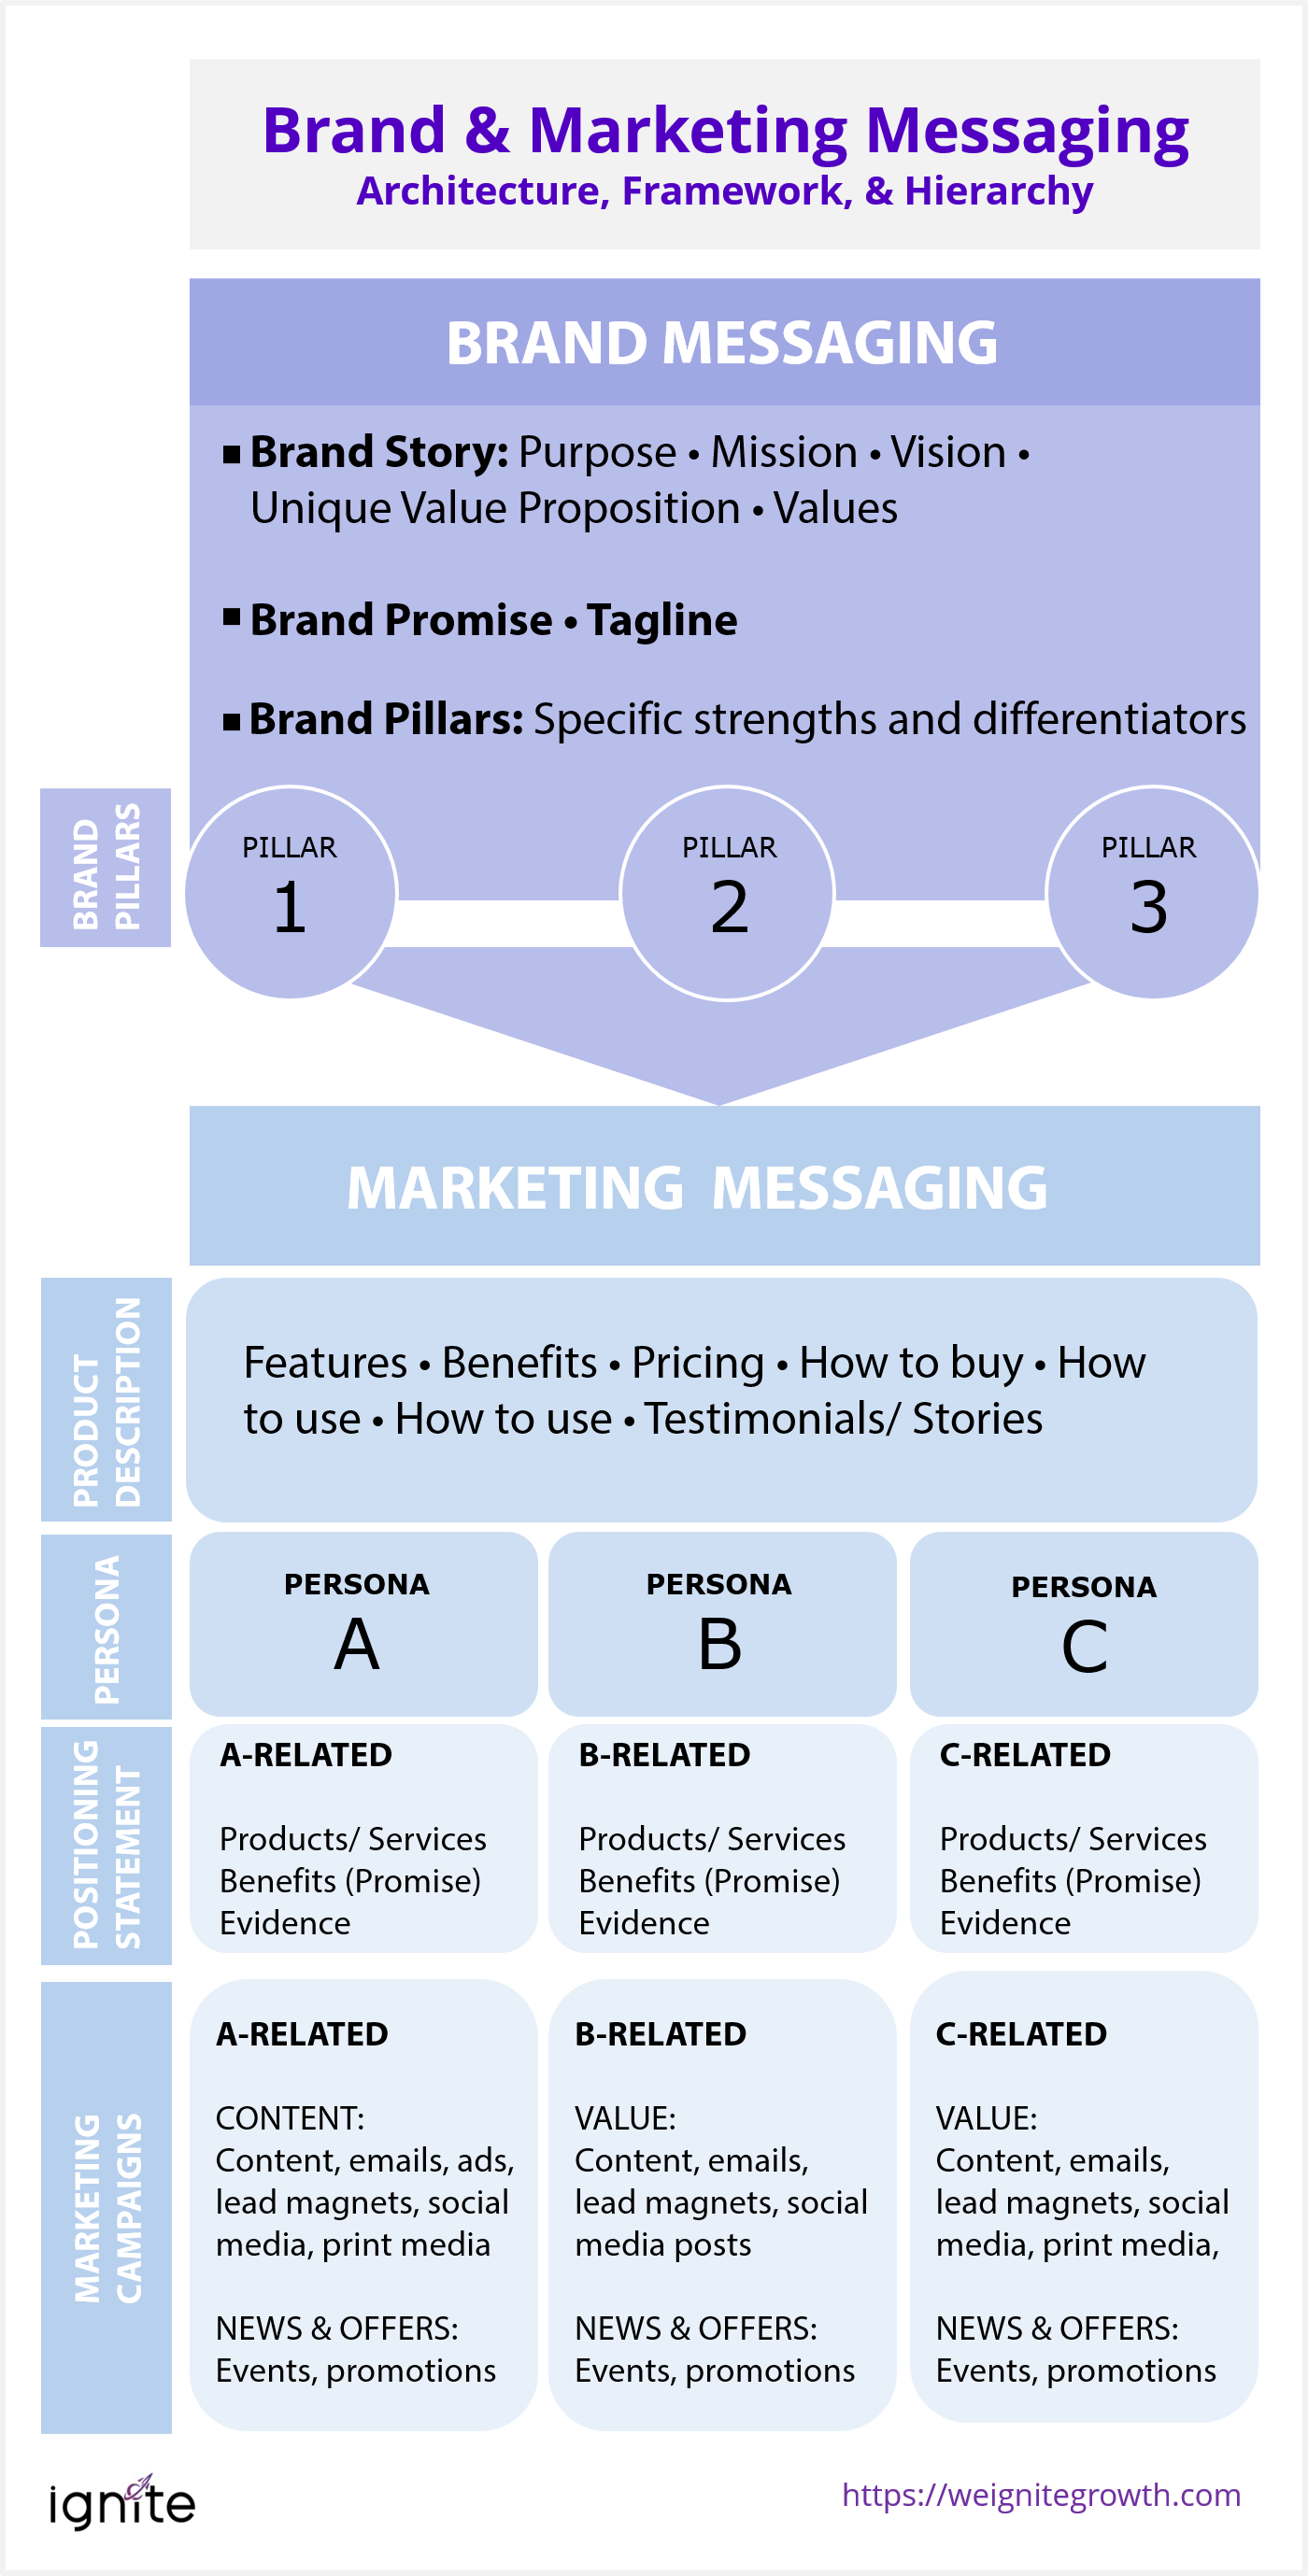 Brand and marketing messaging architecture, framework, & hierarchy